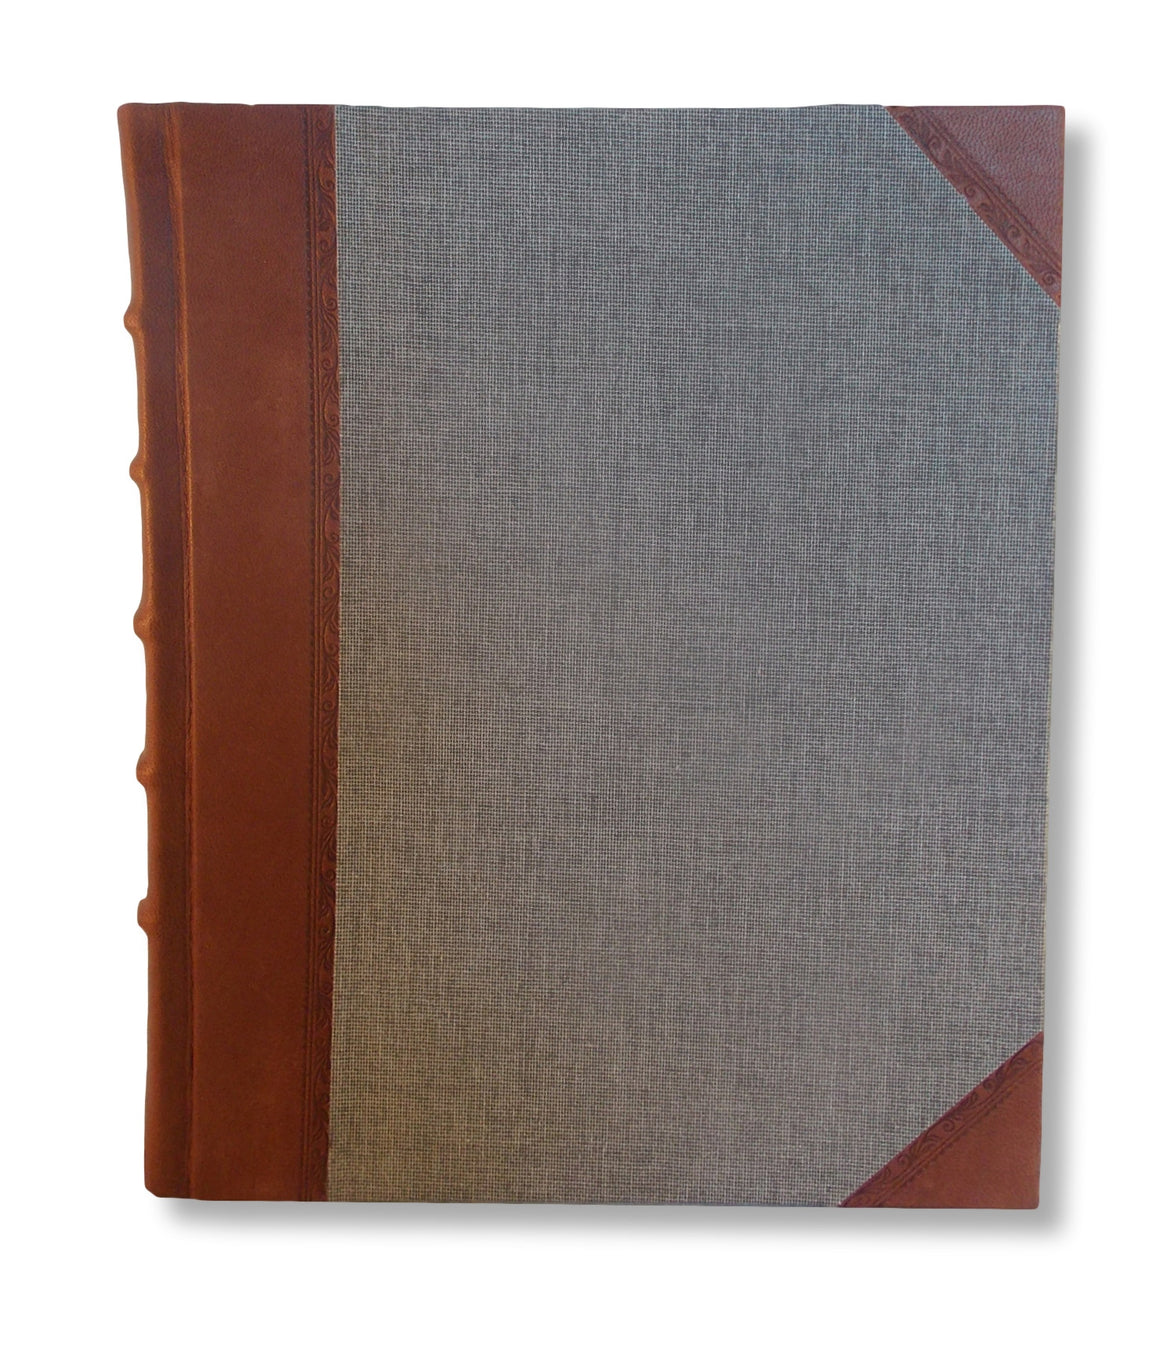 A classic leather photo album featuring brown leather spine with hand tooling and book cloth sides